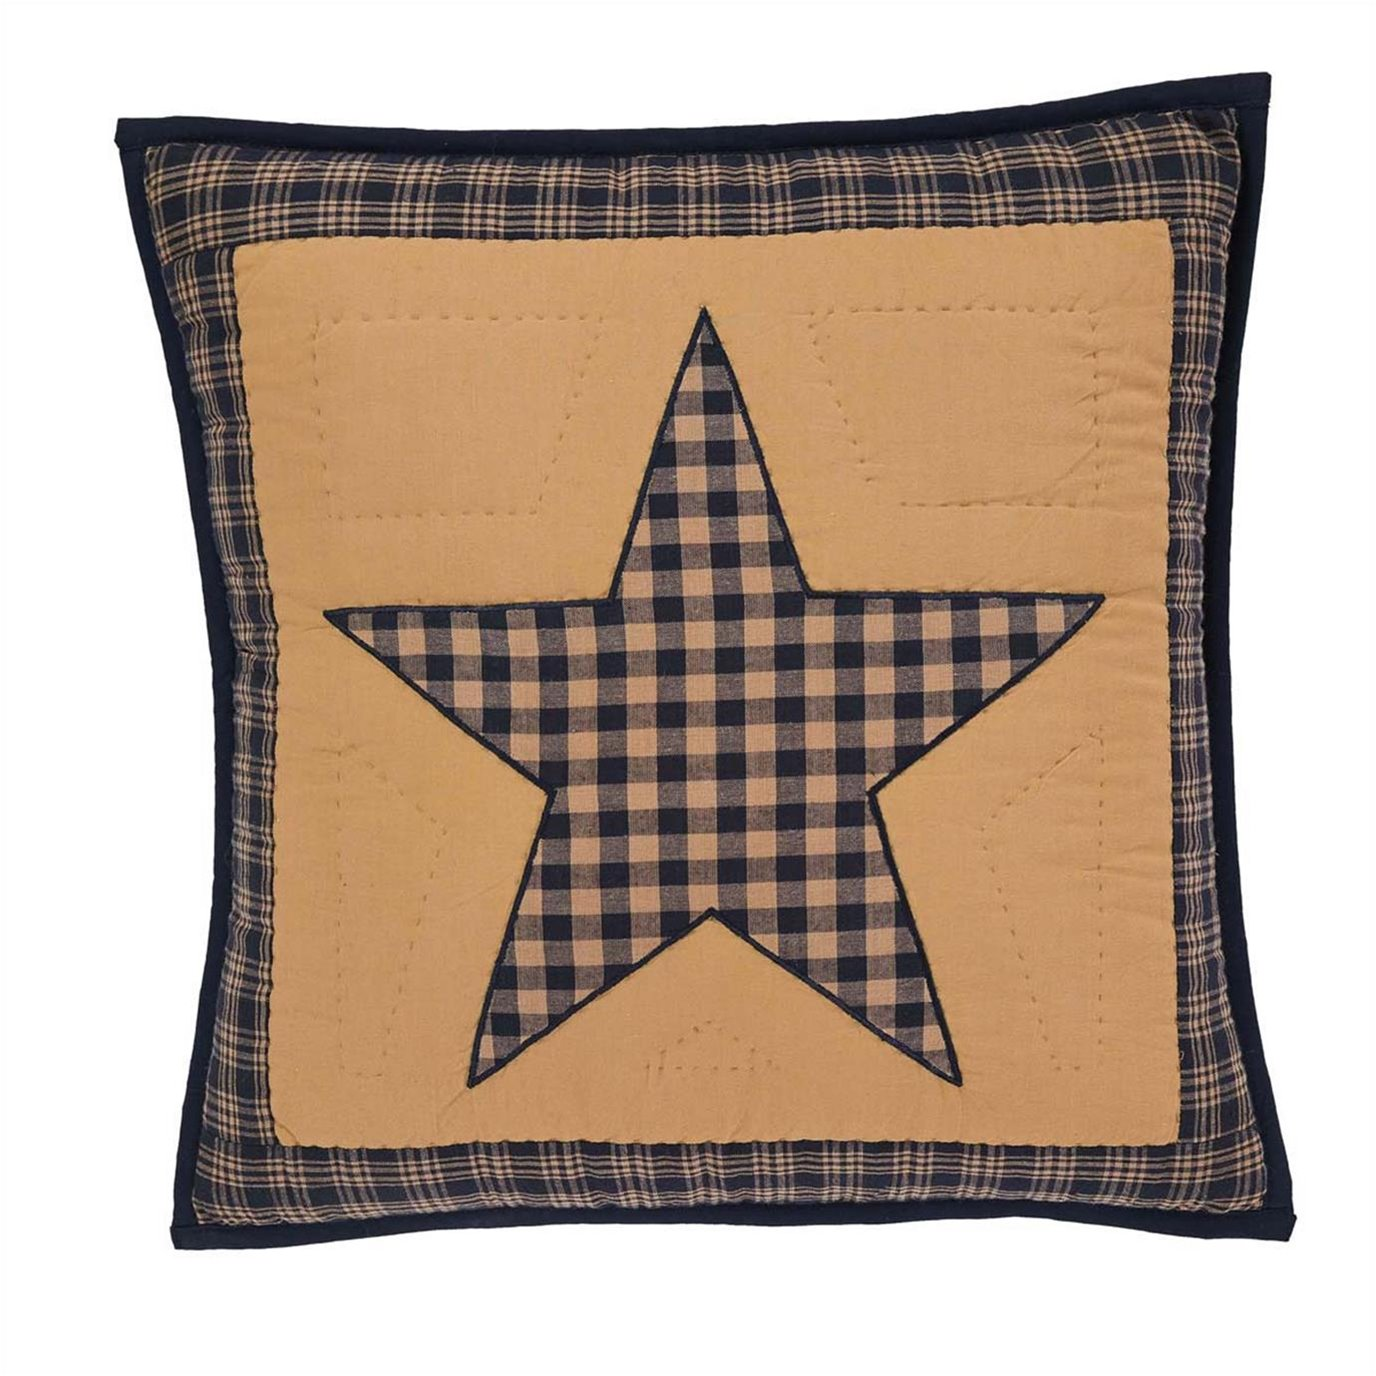 Teton Star Quilted Pillow 16x16